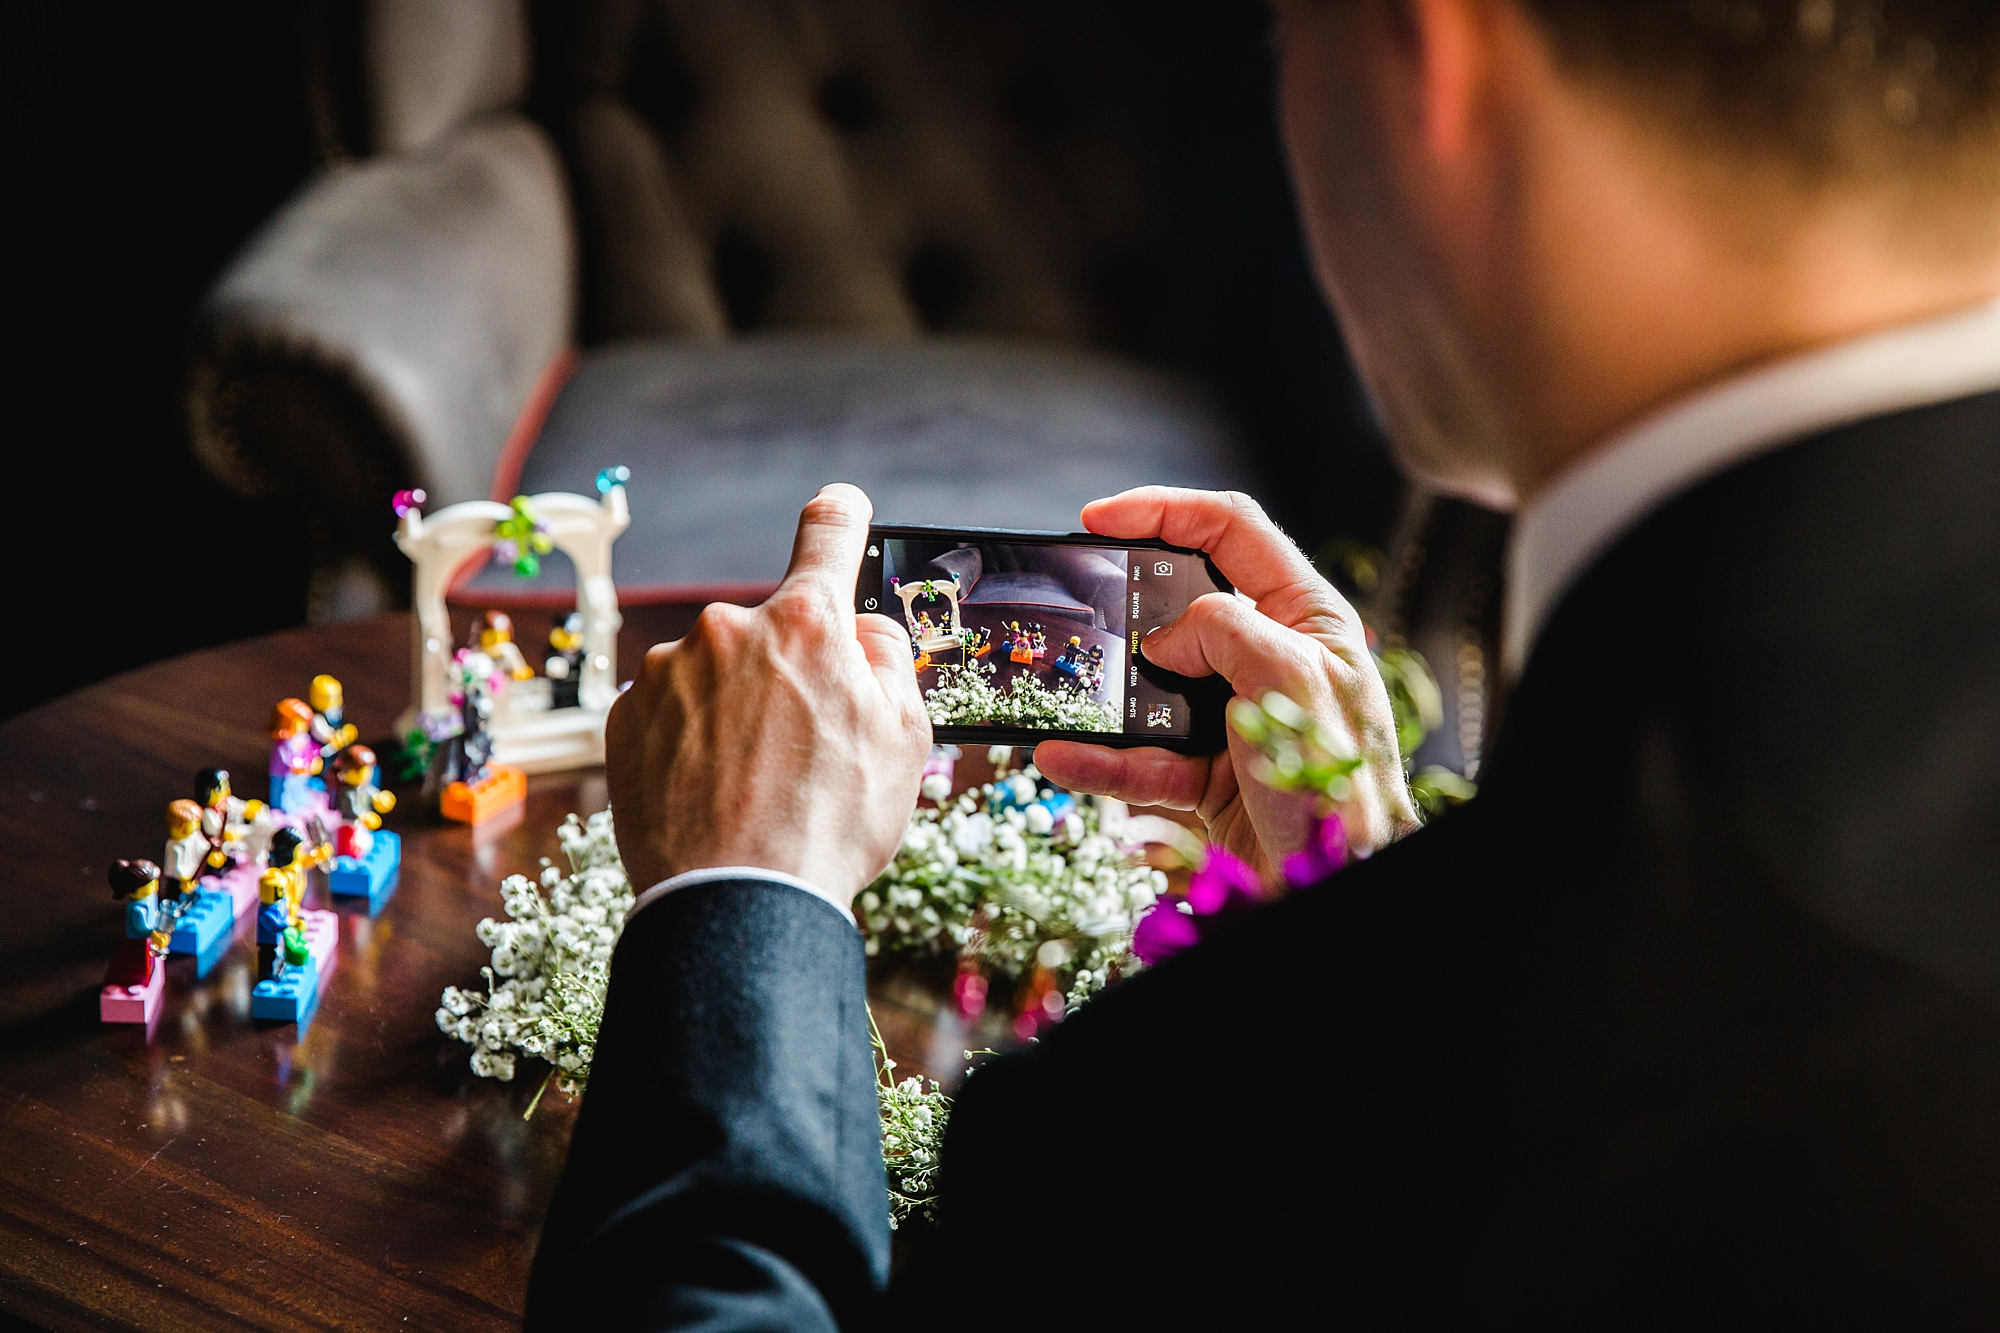 fun london wedding bowling guest takes picture of decoration